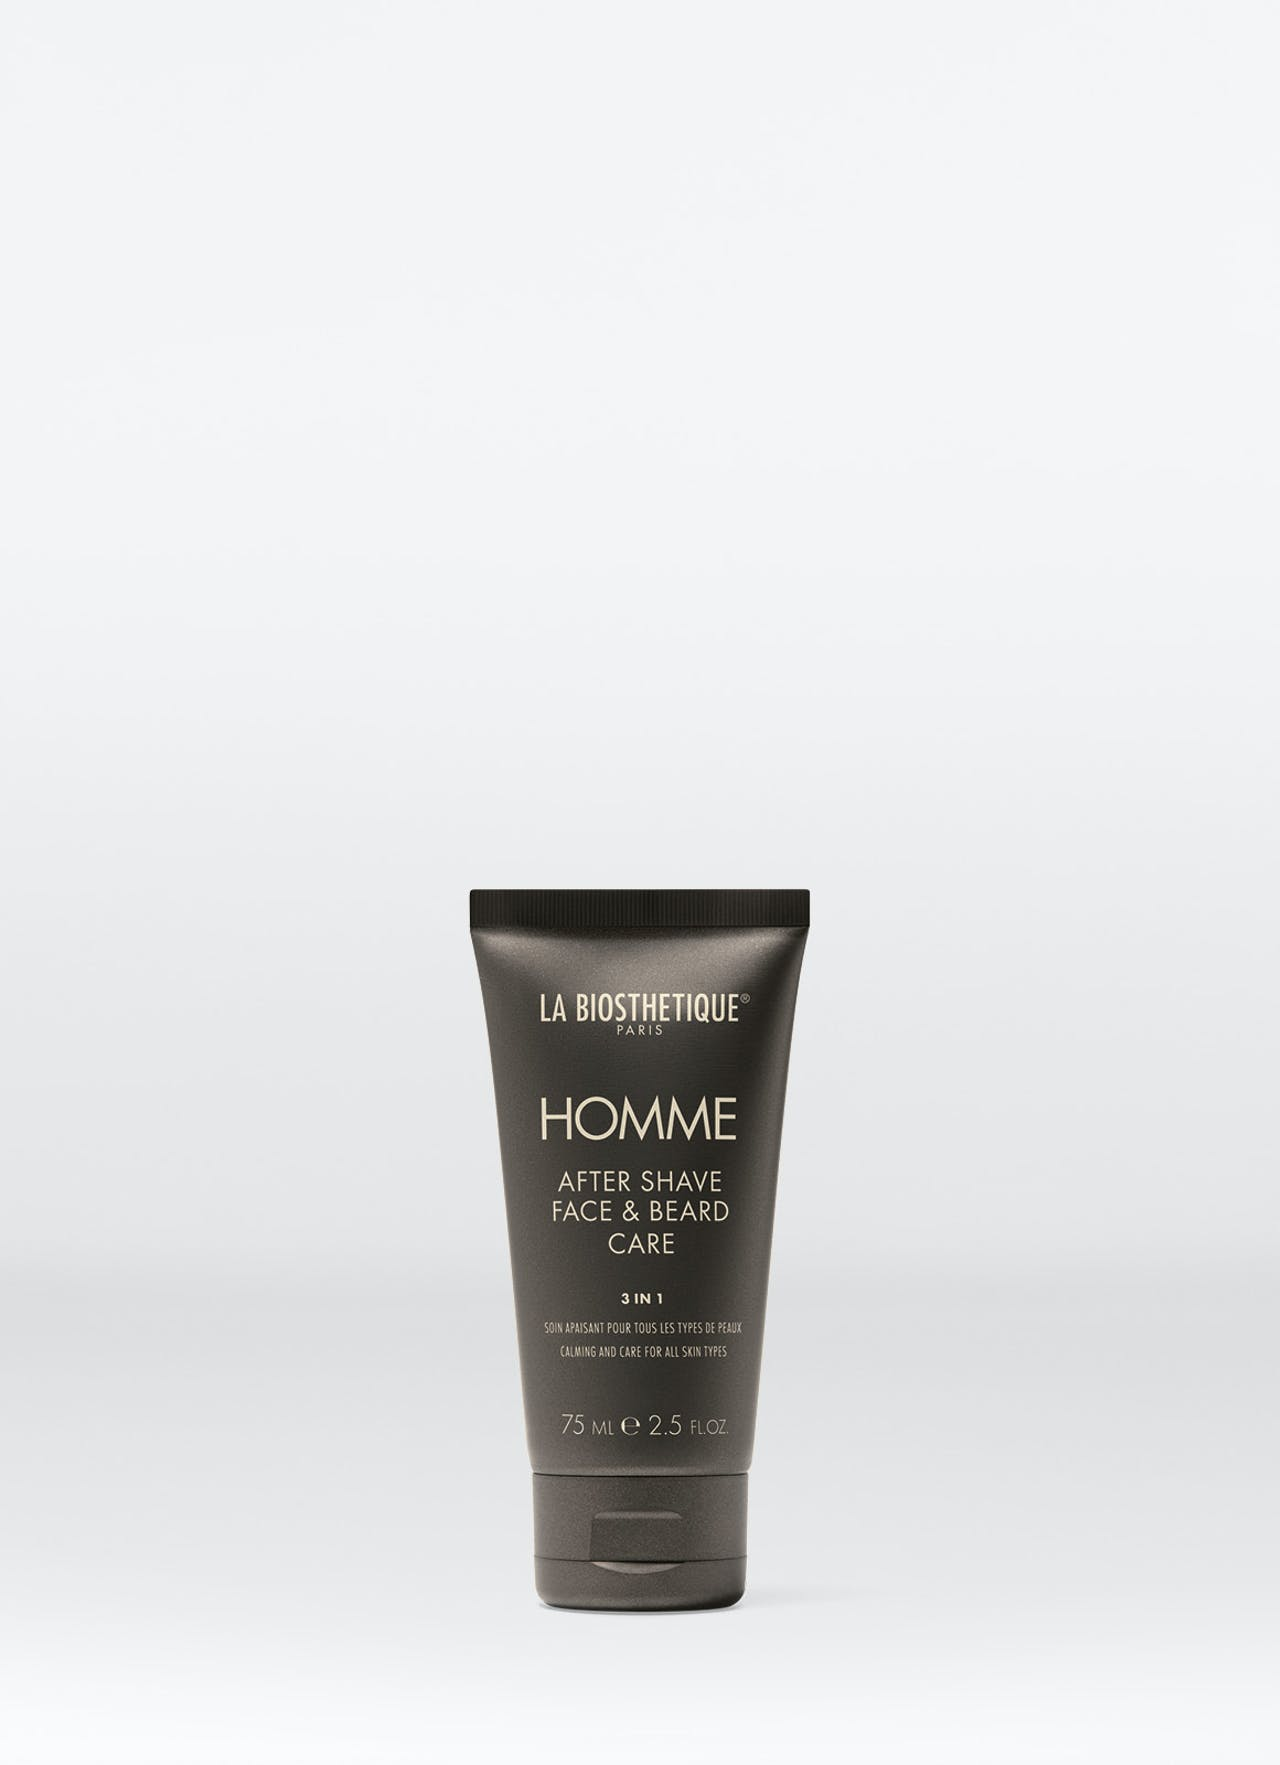 After Shave Face & Beard Care